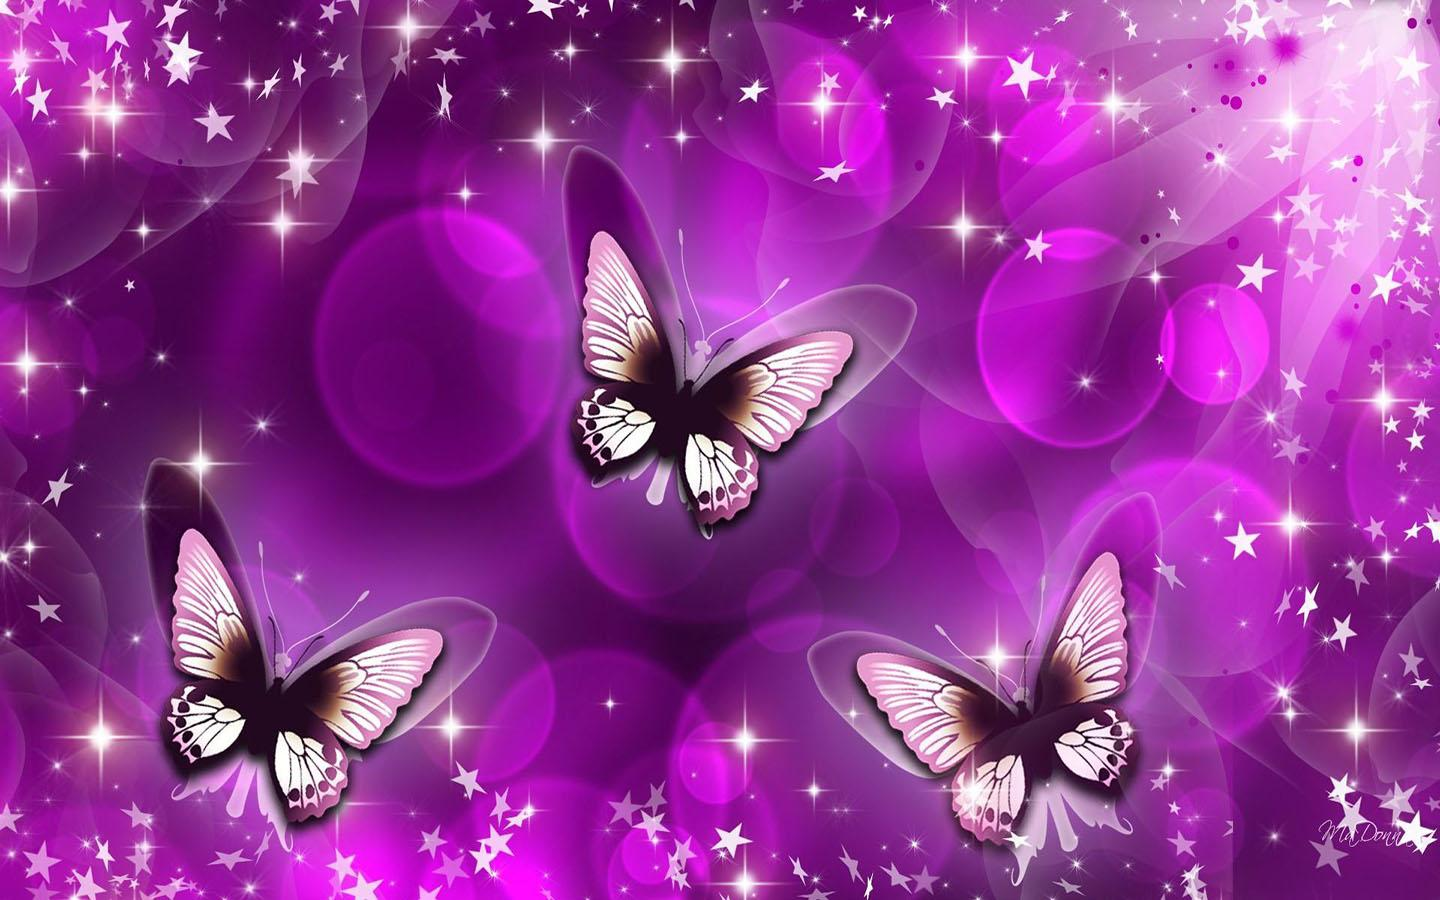 Purple Wallpapers App Ranking and Store Data   App Annie This beautiful and amazing purple Wallpaper is waiting for you